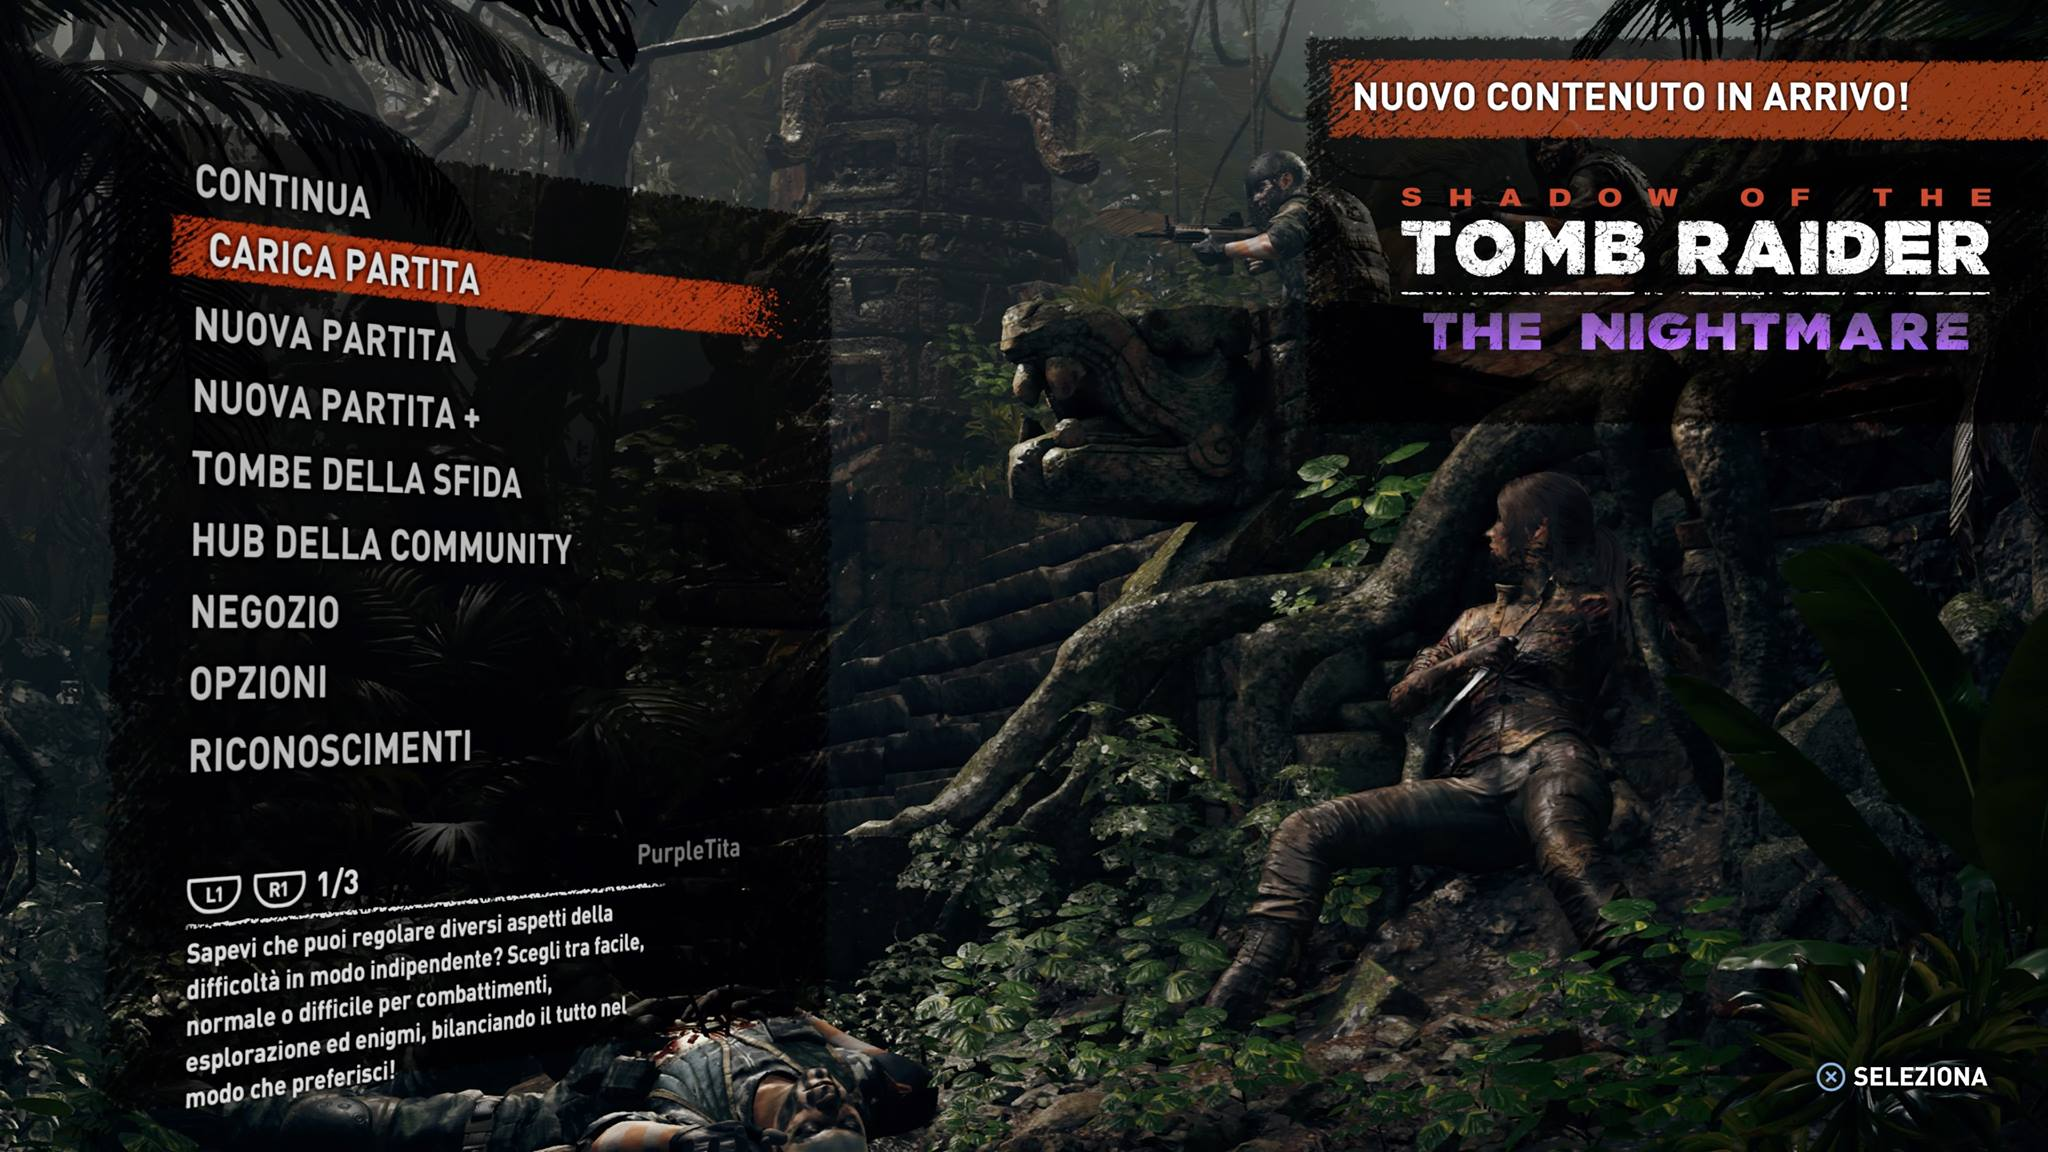 DLC Shadow of the Tomb Raider - The Nightmare